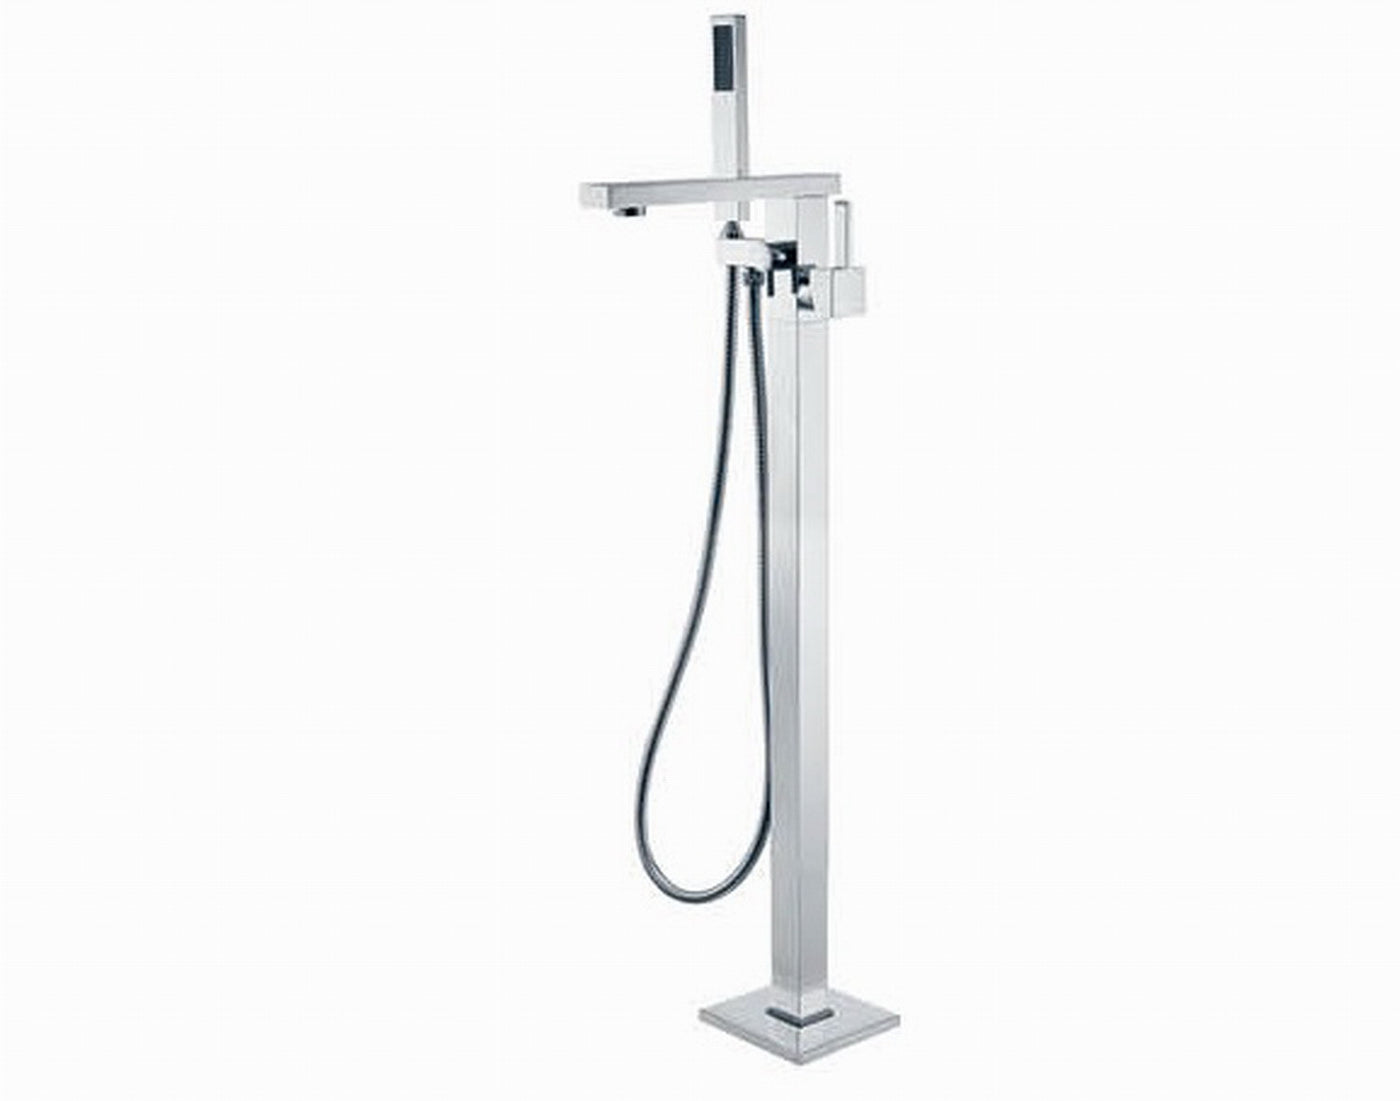 Jet Floor Mixer with Shower Head | Online Bathroomware